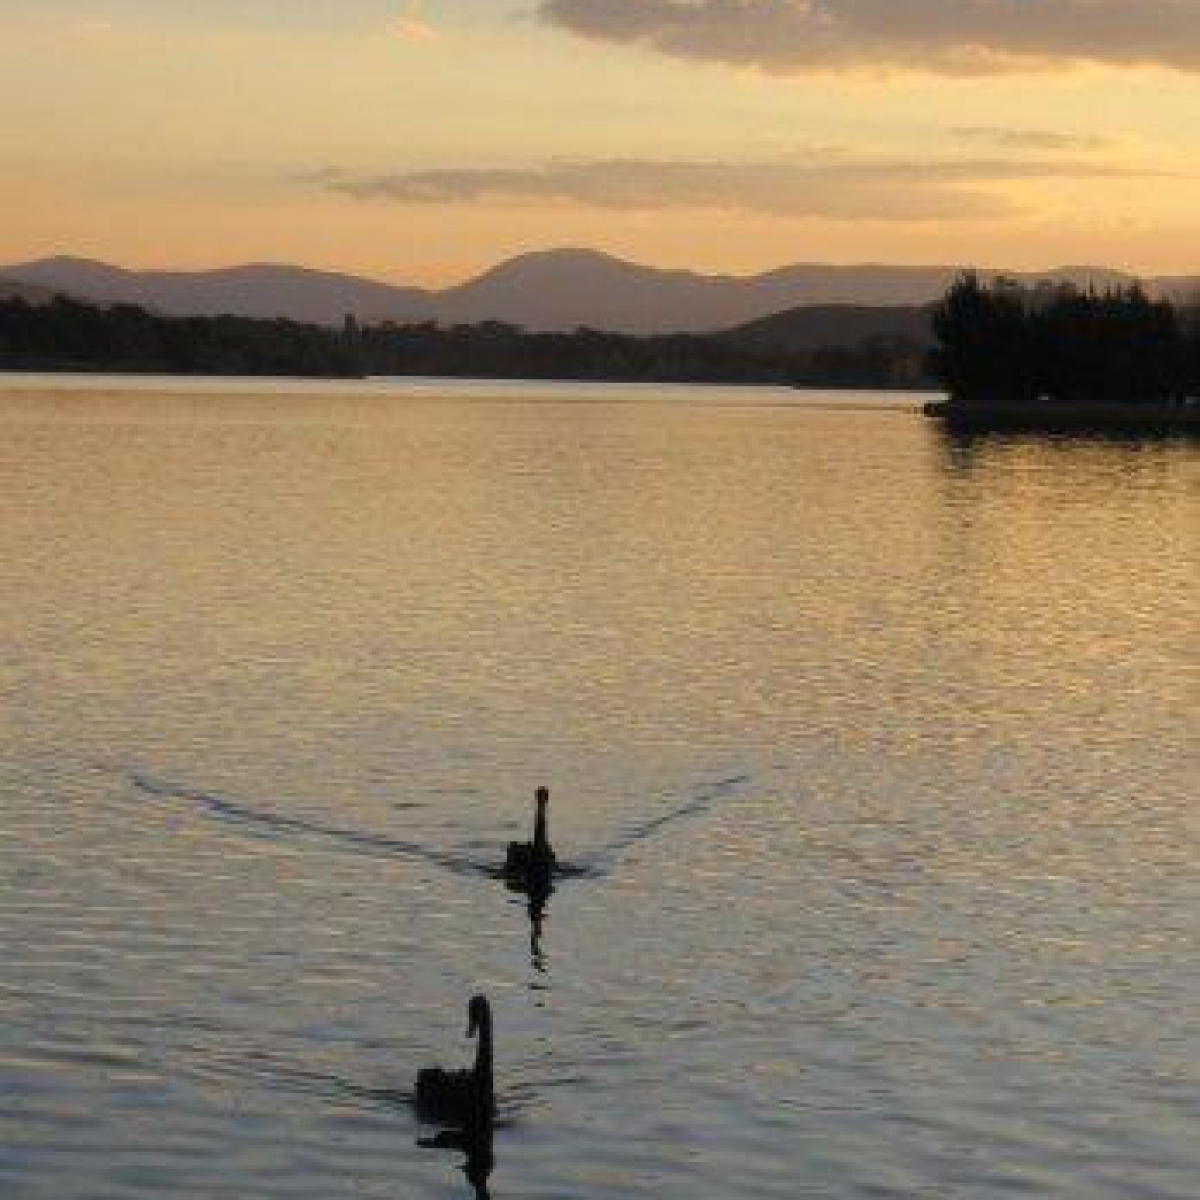 Swans on Lake Burley Griffin at Sunset